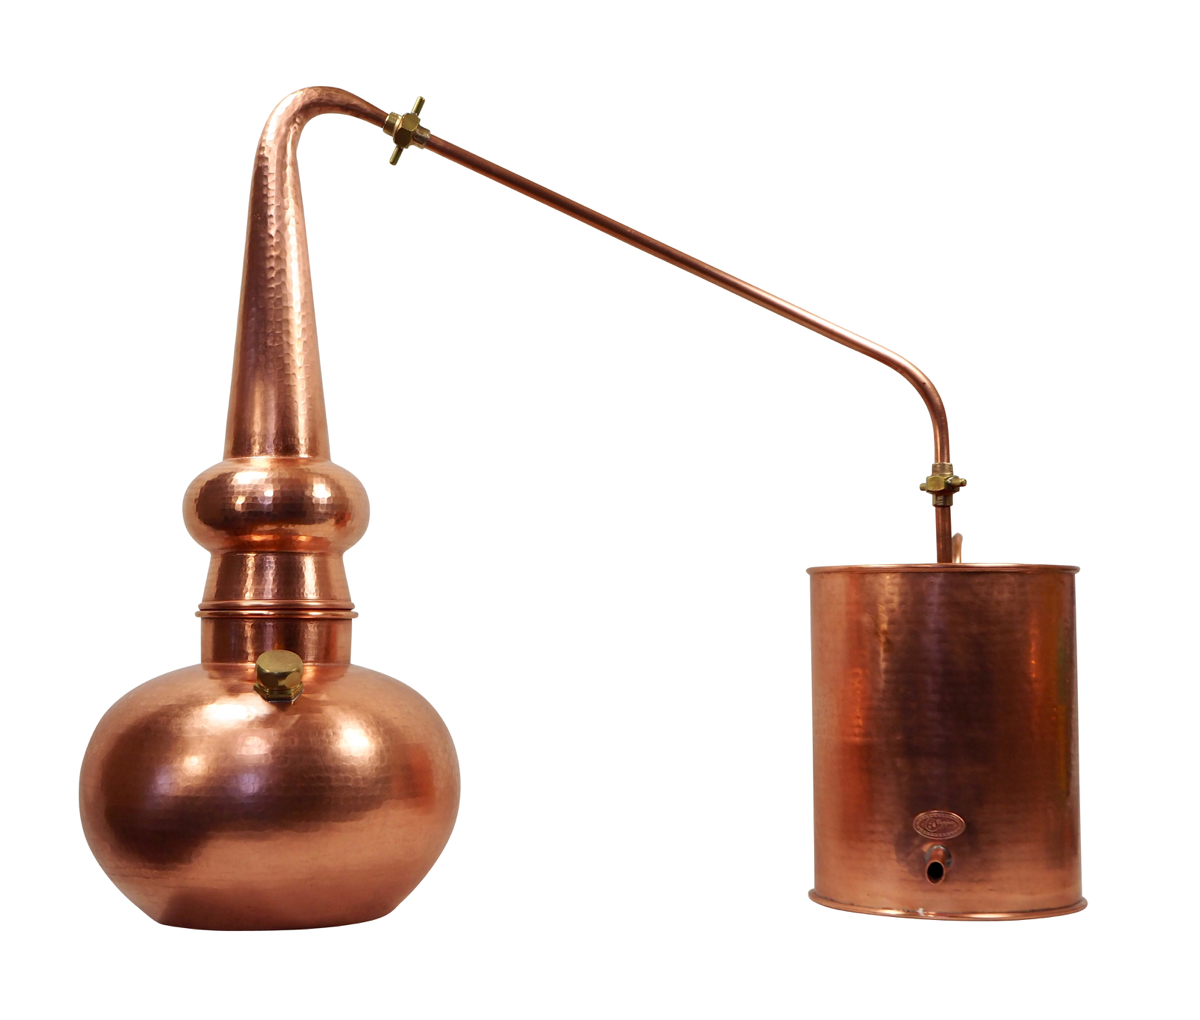 CopperGarden®  Whiskydestille  lifetime Supreme  ❁ 10 Liter ❁ mit Thermometer